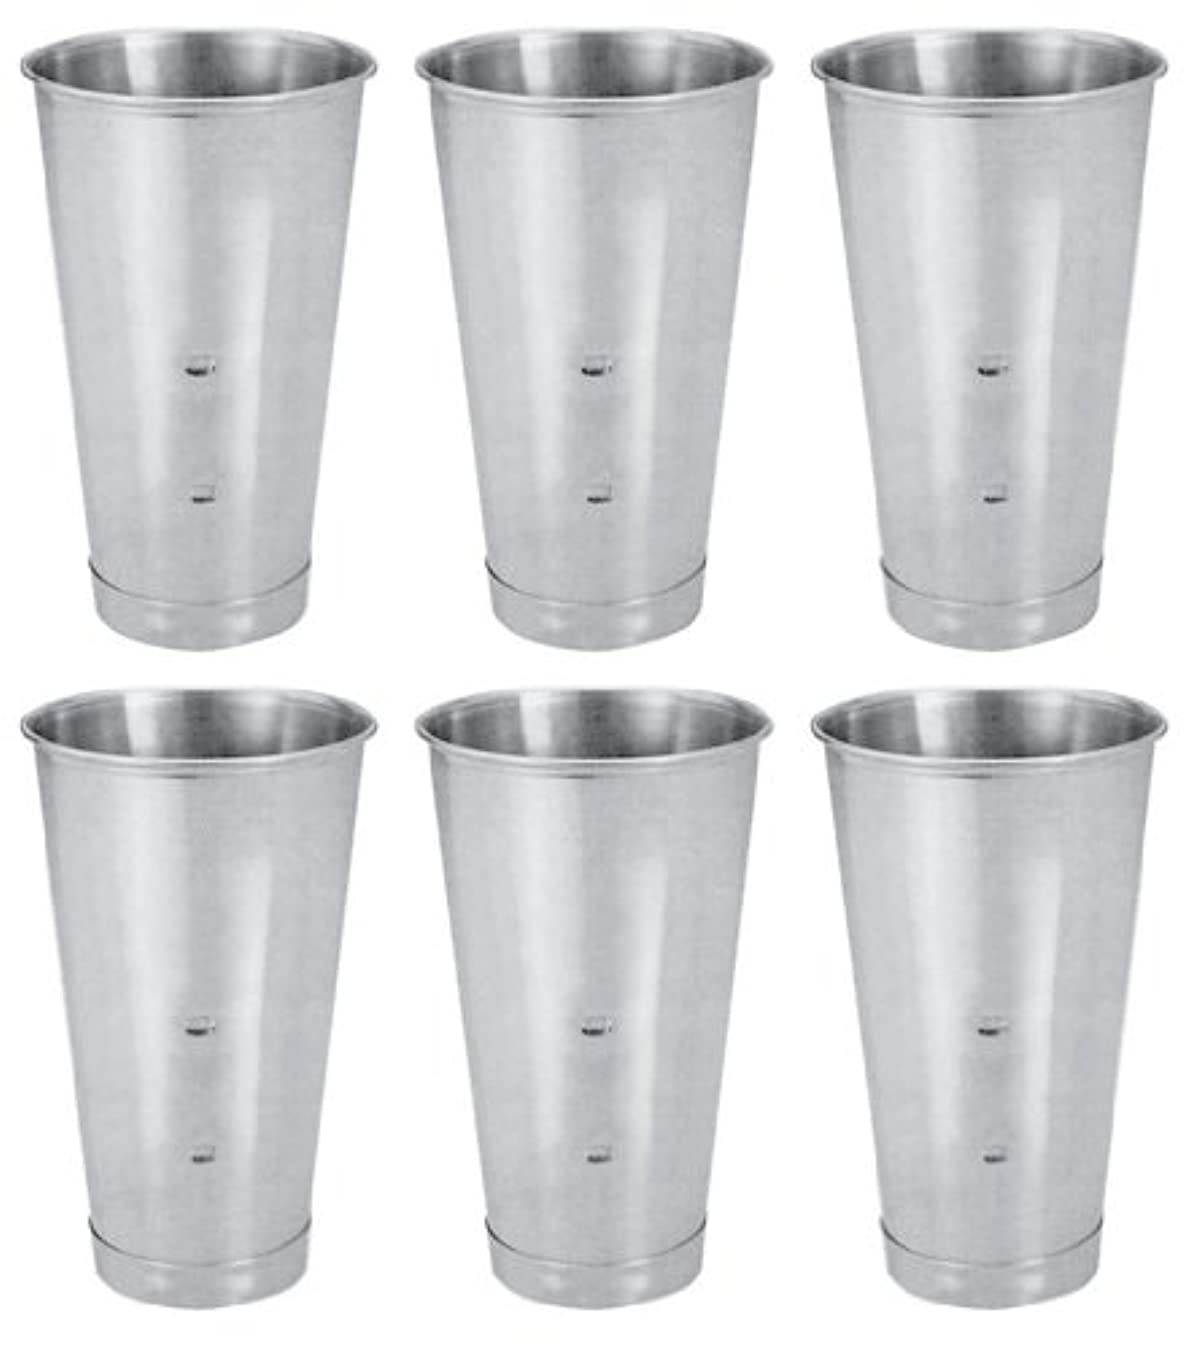 SET OF 6, 30 Oz. (Ounce) Malt Cup, Milkshake Cup, Blender Cup, Cocktail Mixing Cup, Stainless Steel, Commercial Grade